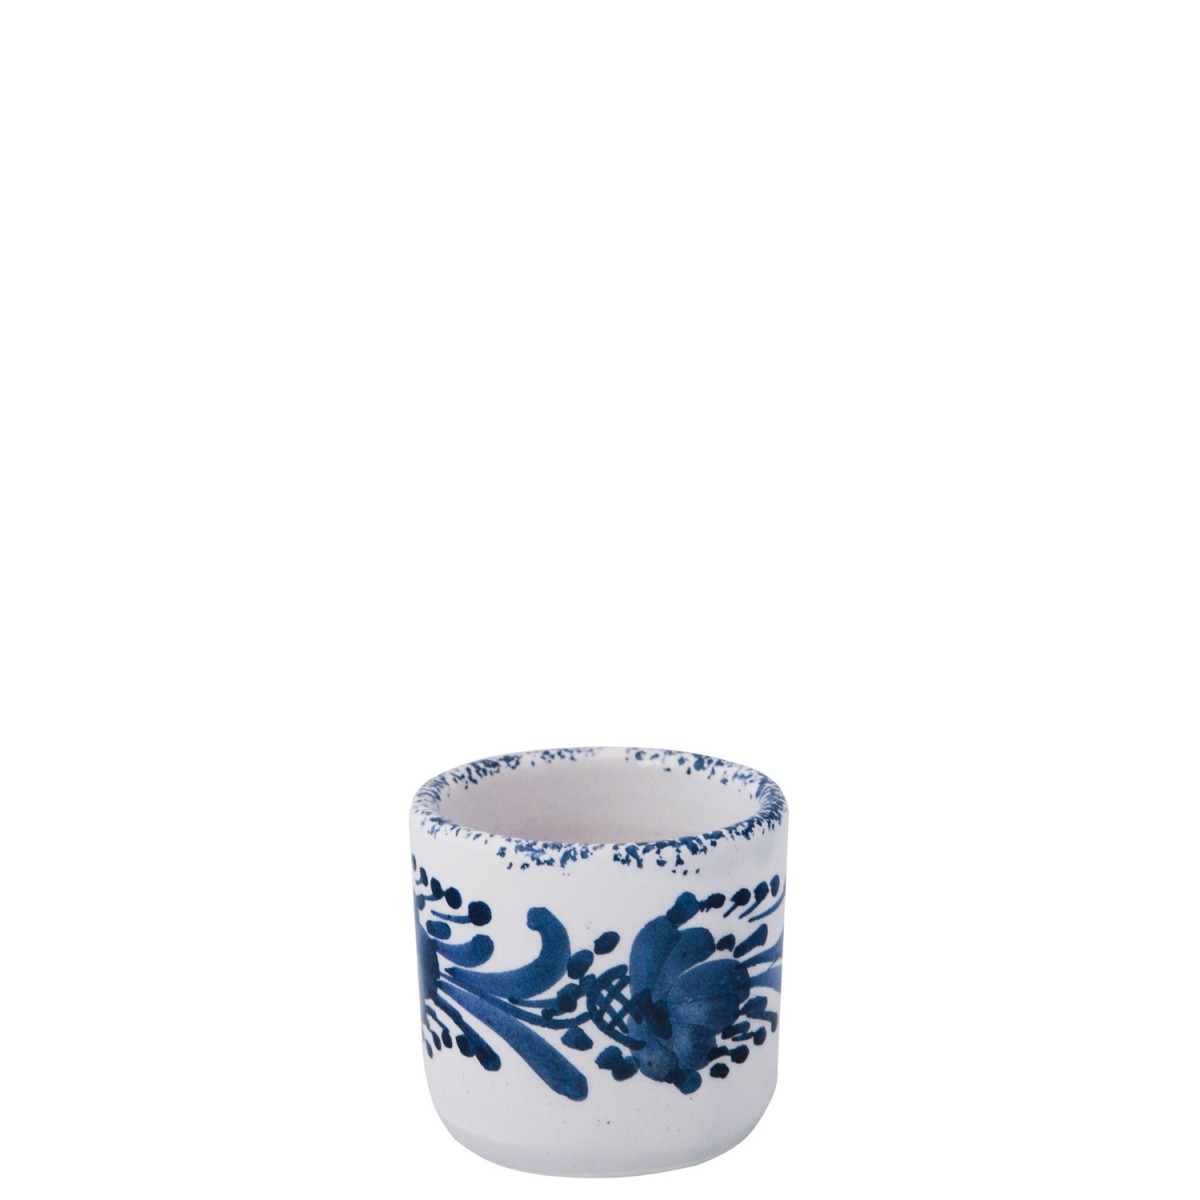 Skyriana_Hand_Painted_Ceramic_Snaps_Glasses_Blue_and_White-1